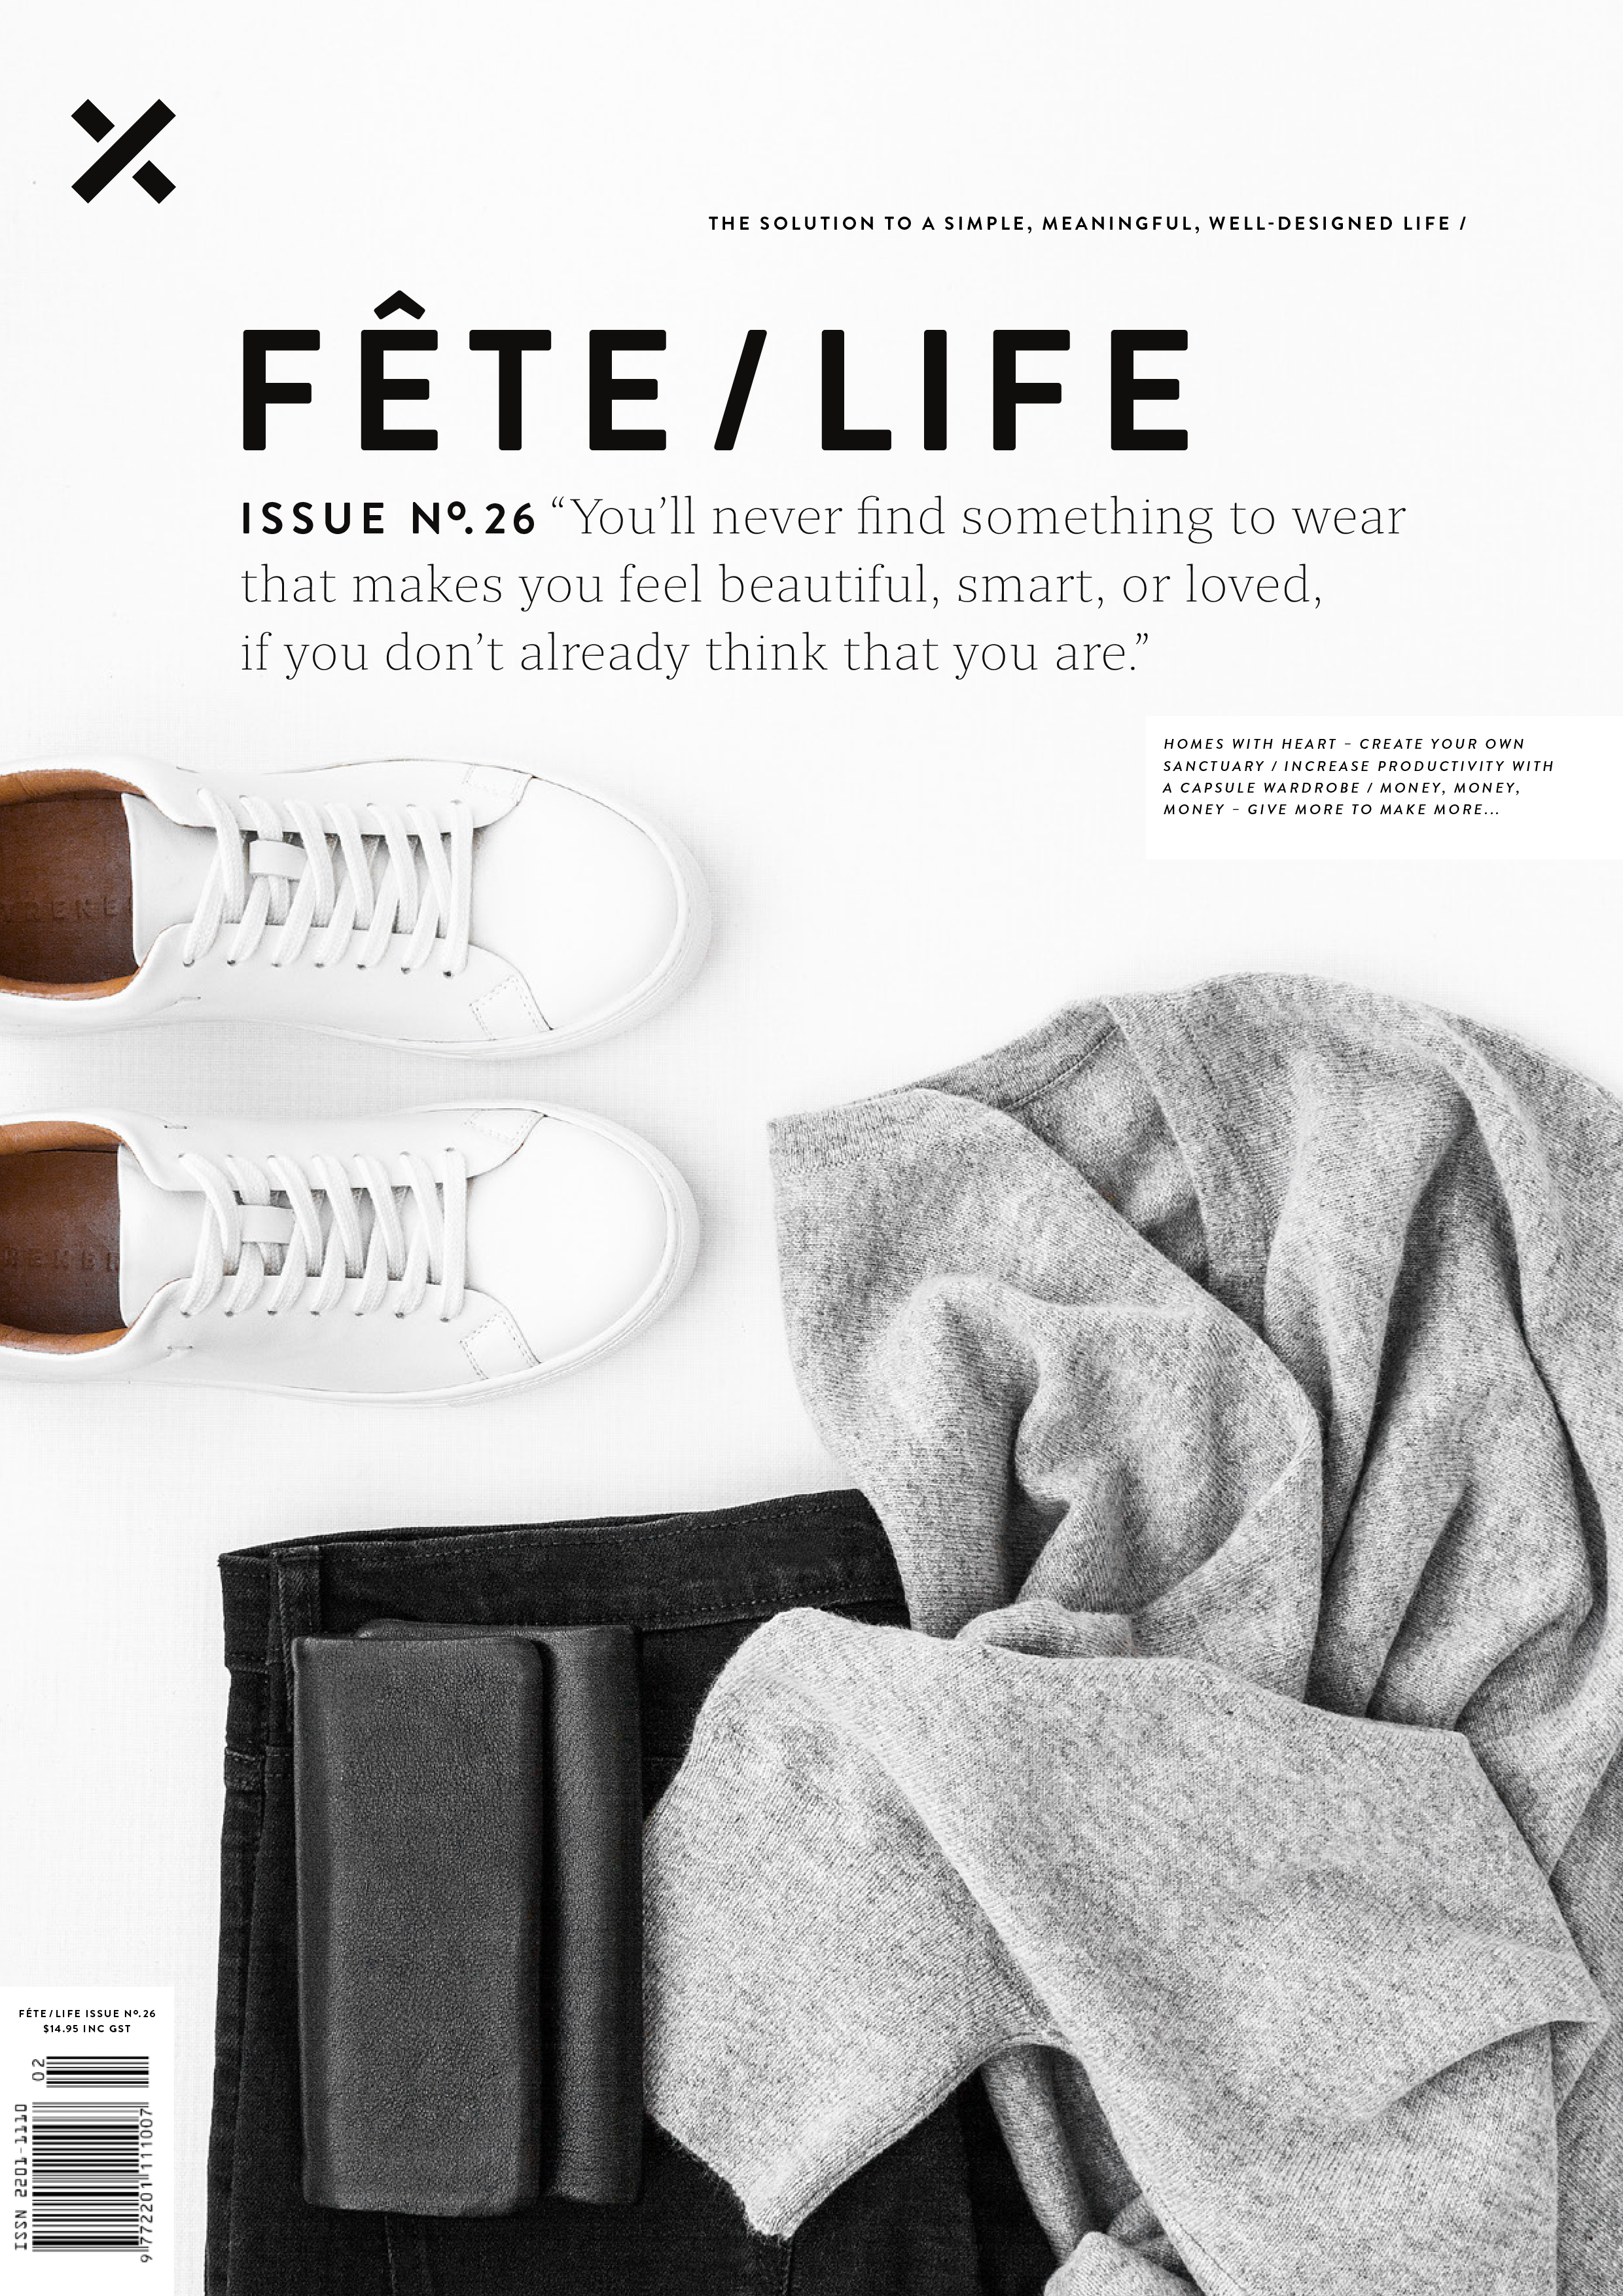 FeteLifeIssueNo26CoverLR.png